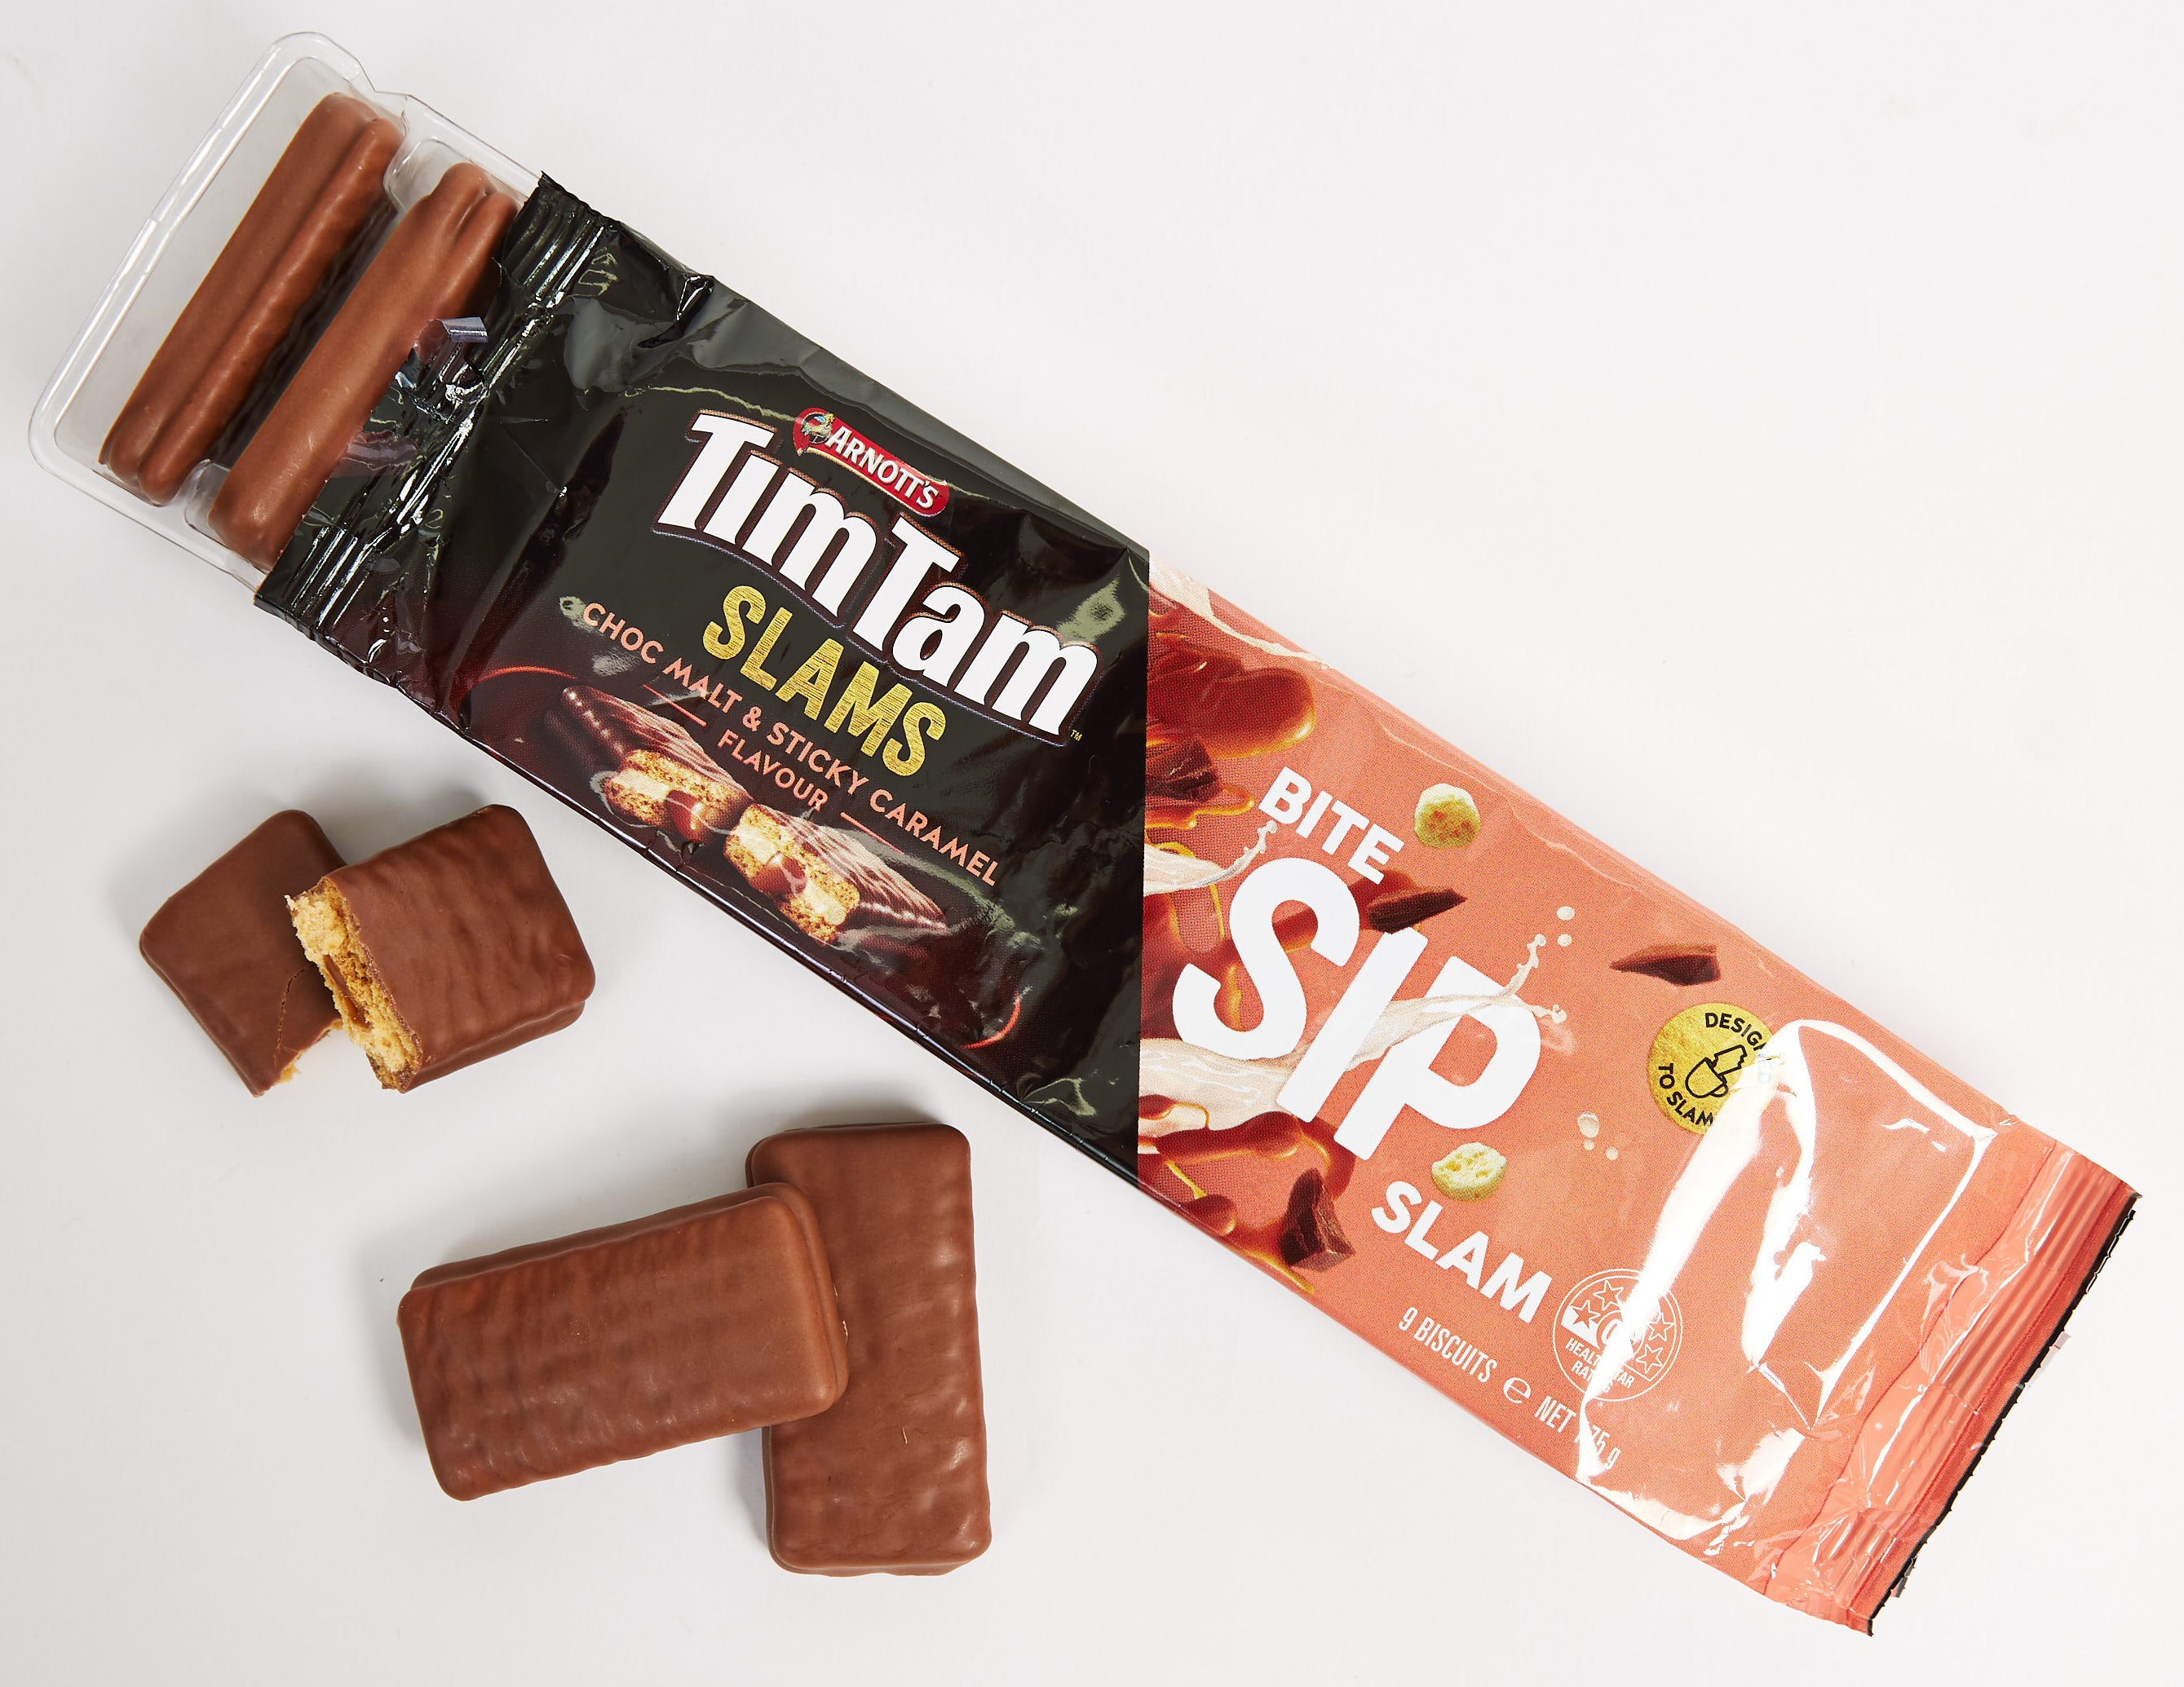 Arnotts Tim Tam Slams Choc Malt & Sticky Caramel